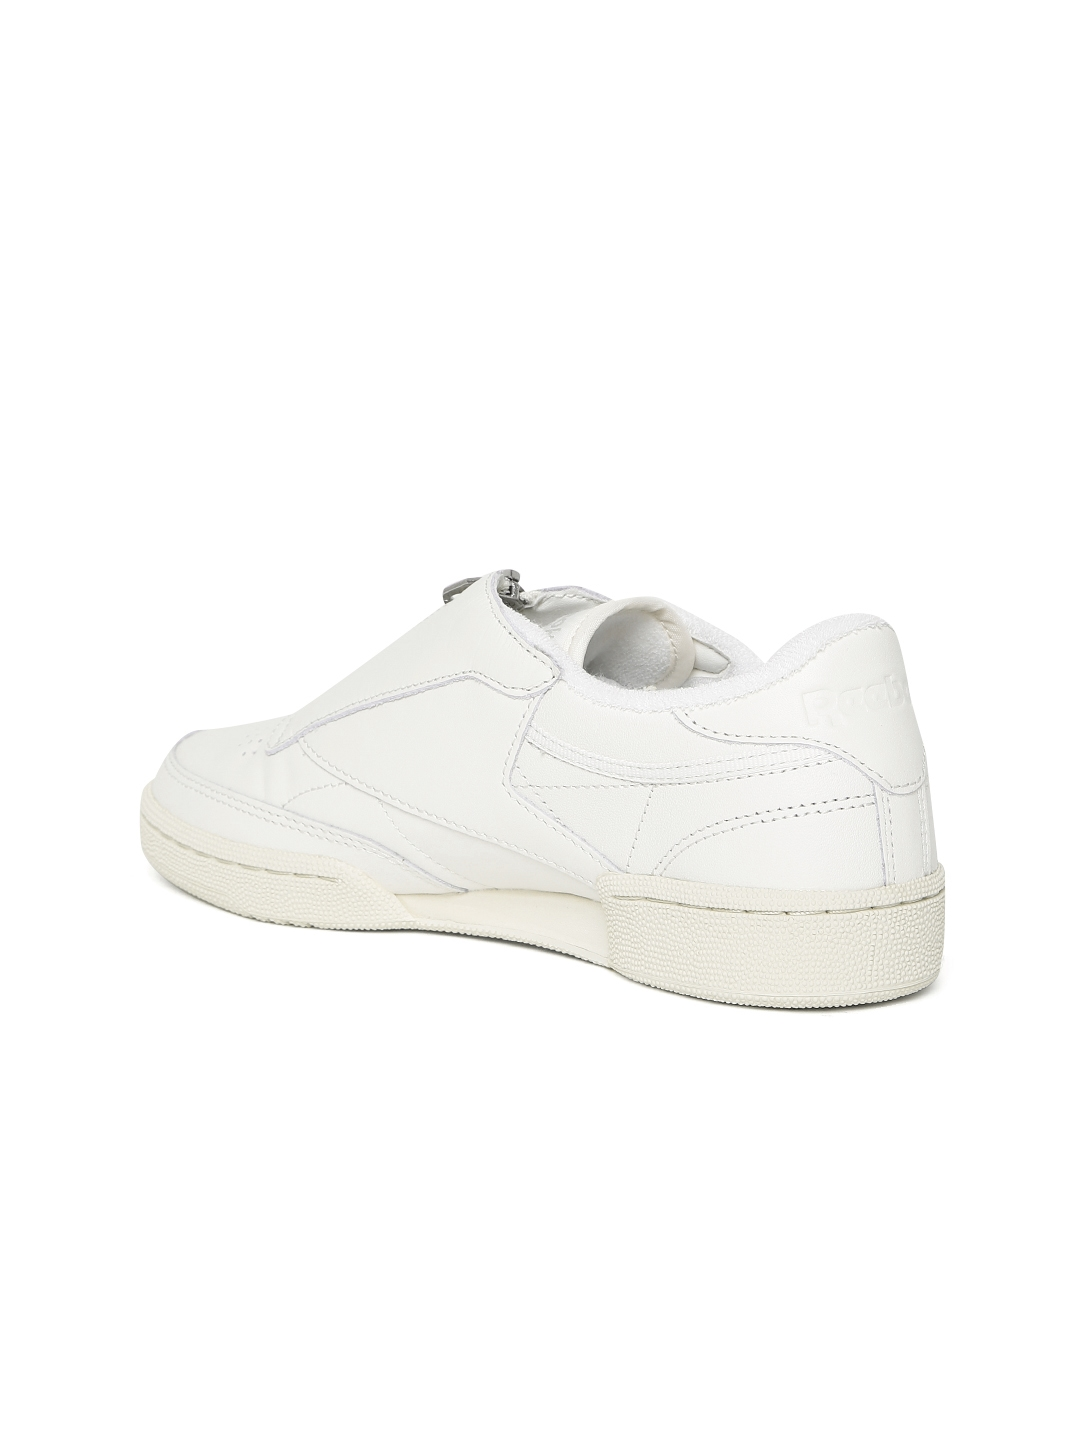 f5cb13b3e57f9 Reebok Classic Women Off-White Club C 85 Zip Leather Slip-On Sneakers